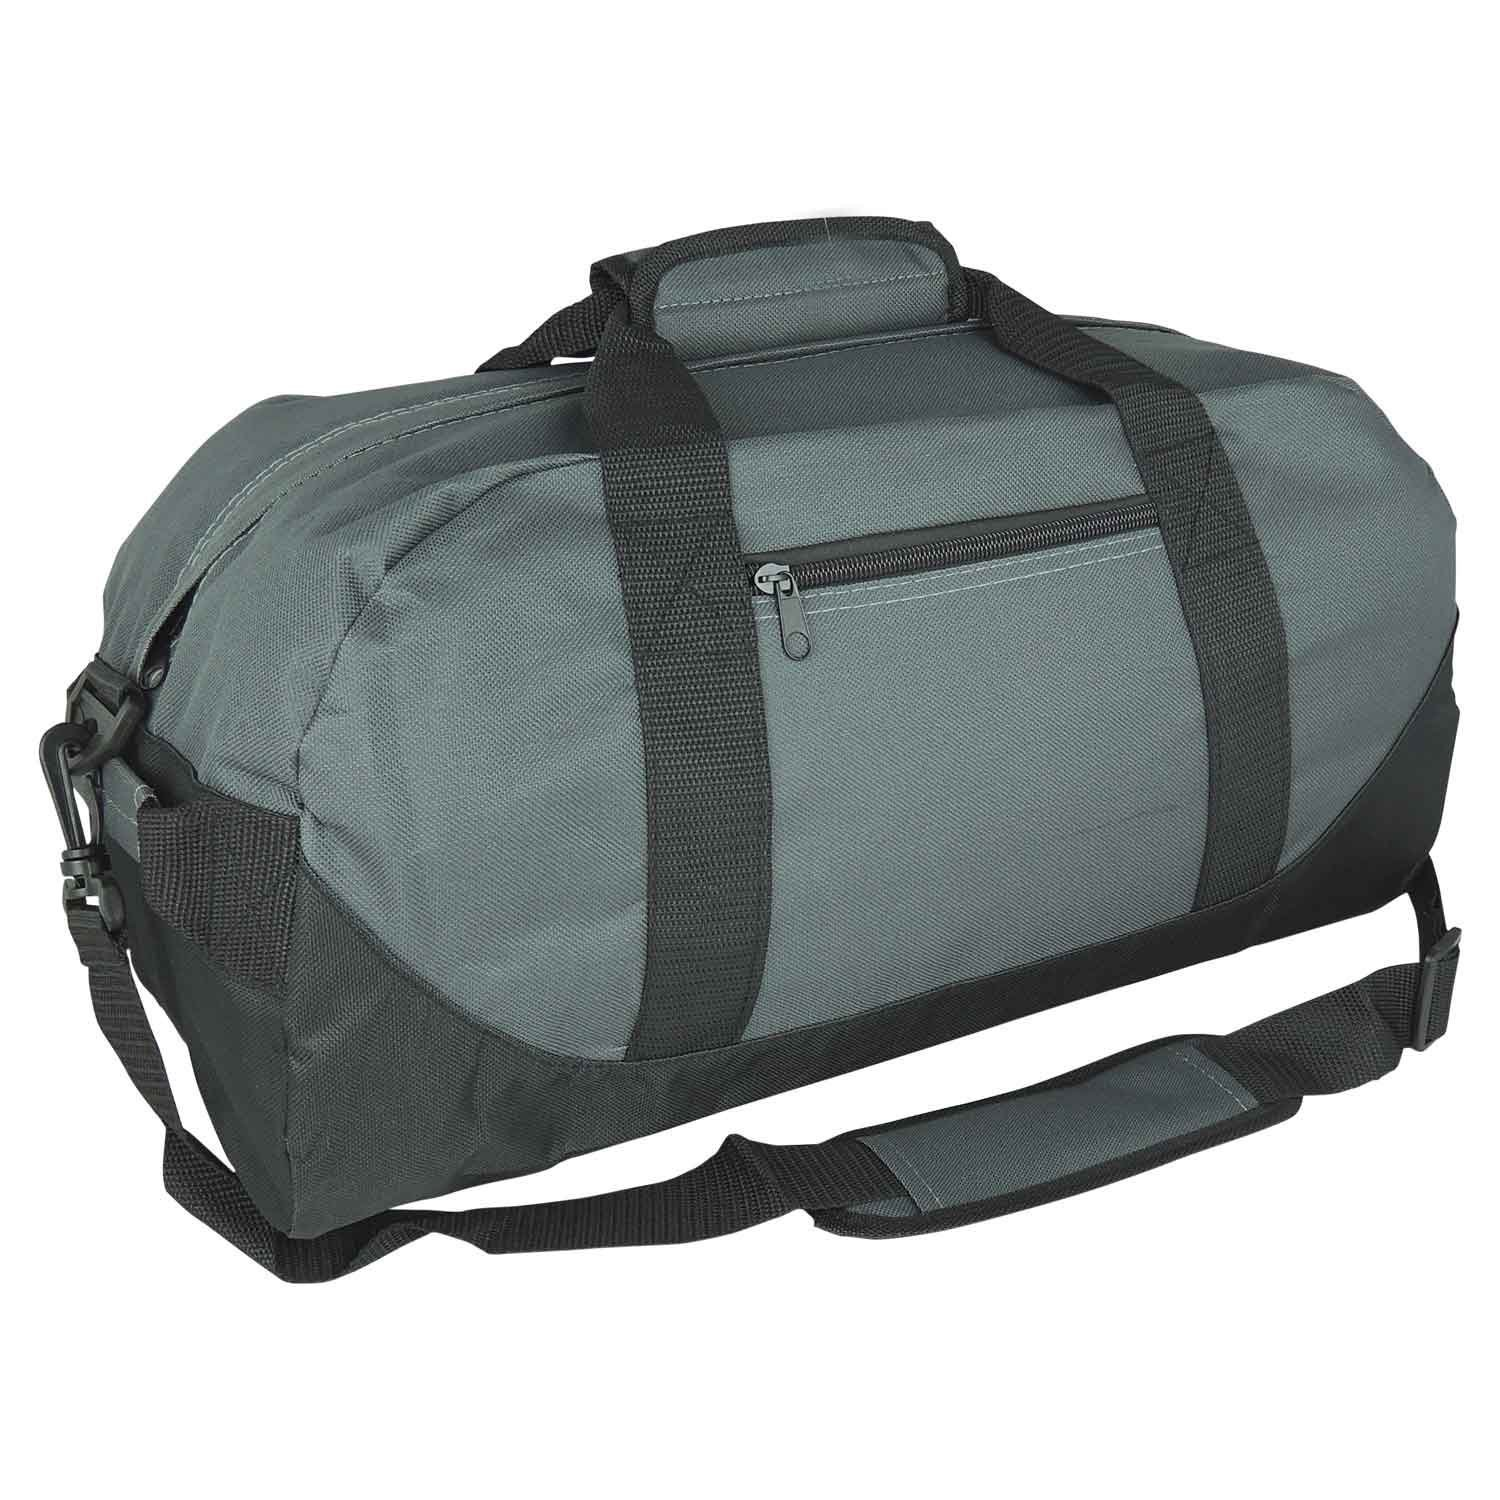 iEquip 12'' 14'' 18'' 21'' Duffle Bag, Gym, Travel Bag Two Tone (Medium (18''x 9'' x 9''), Gray) by iEquip